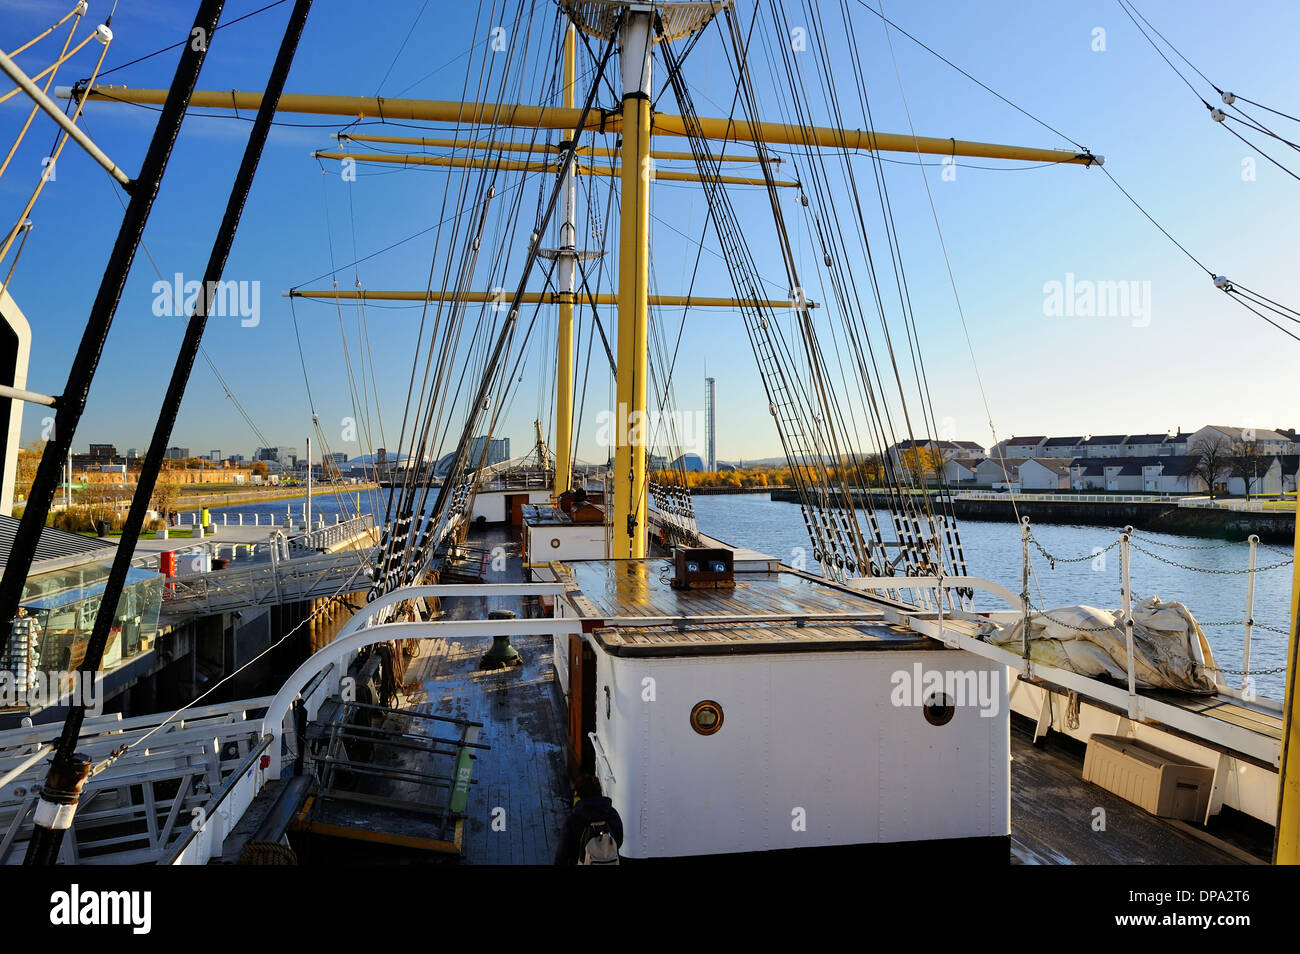 On board tall ship SV Glenlee berthed at new Riverside Museum of Transport, Glasgow, Scotland - Stock Image